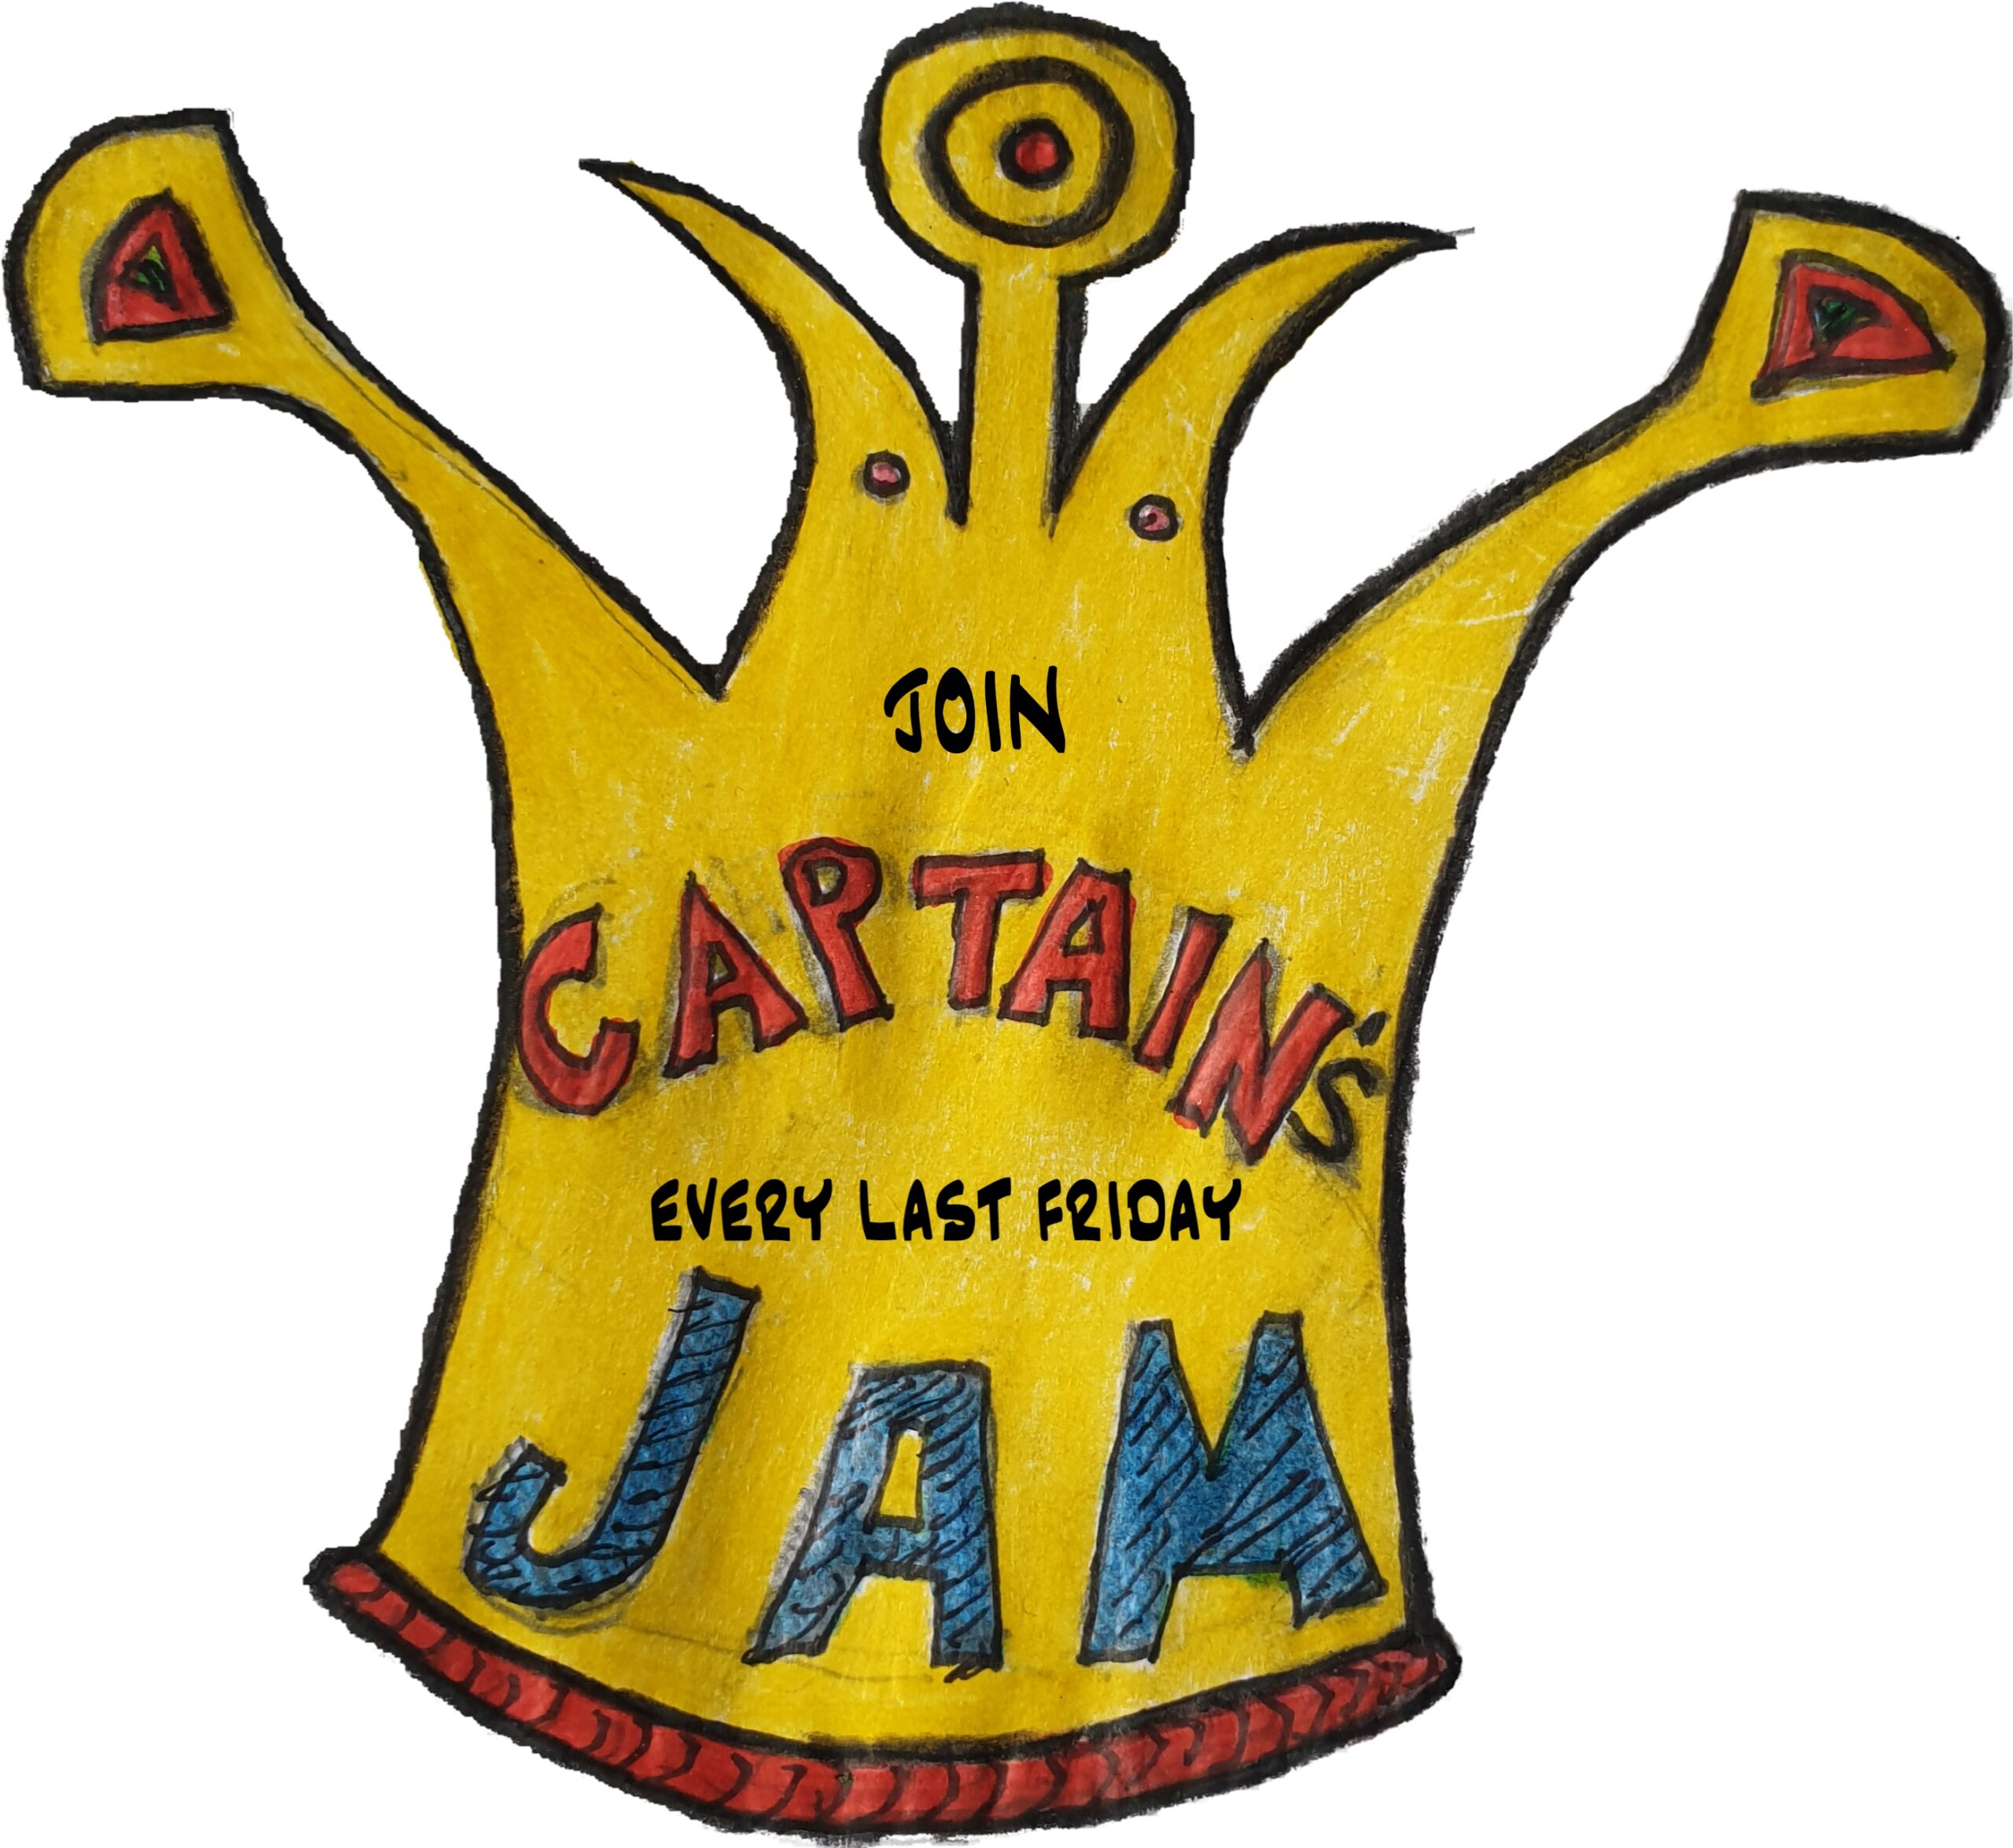 You are currently viewing Captain's Jam